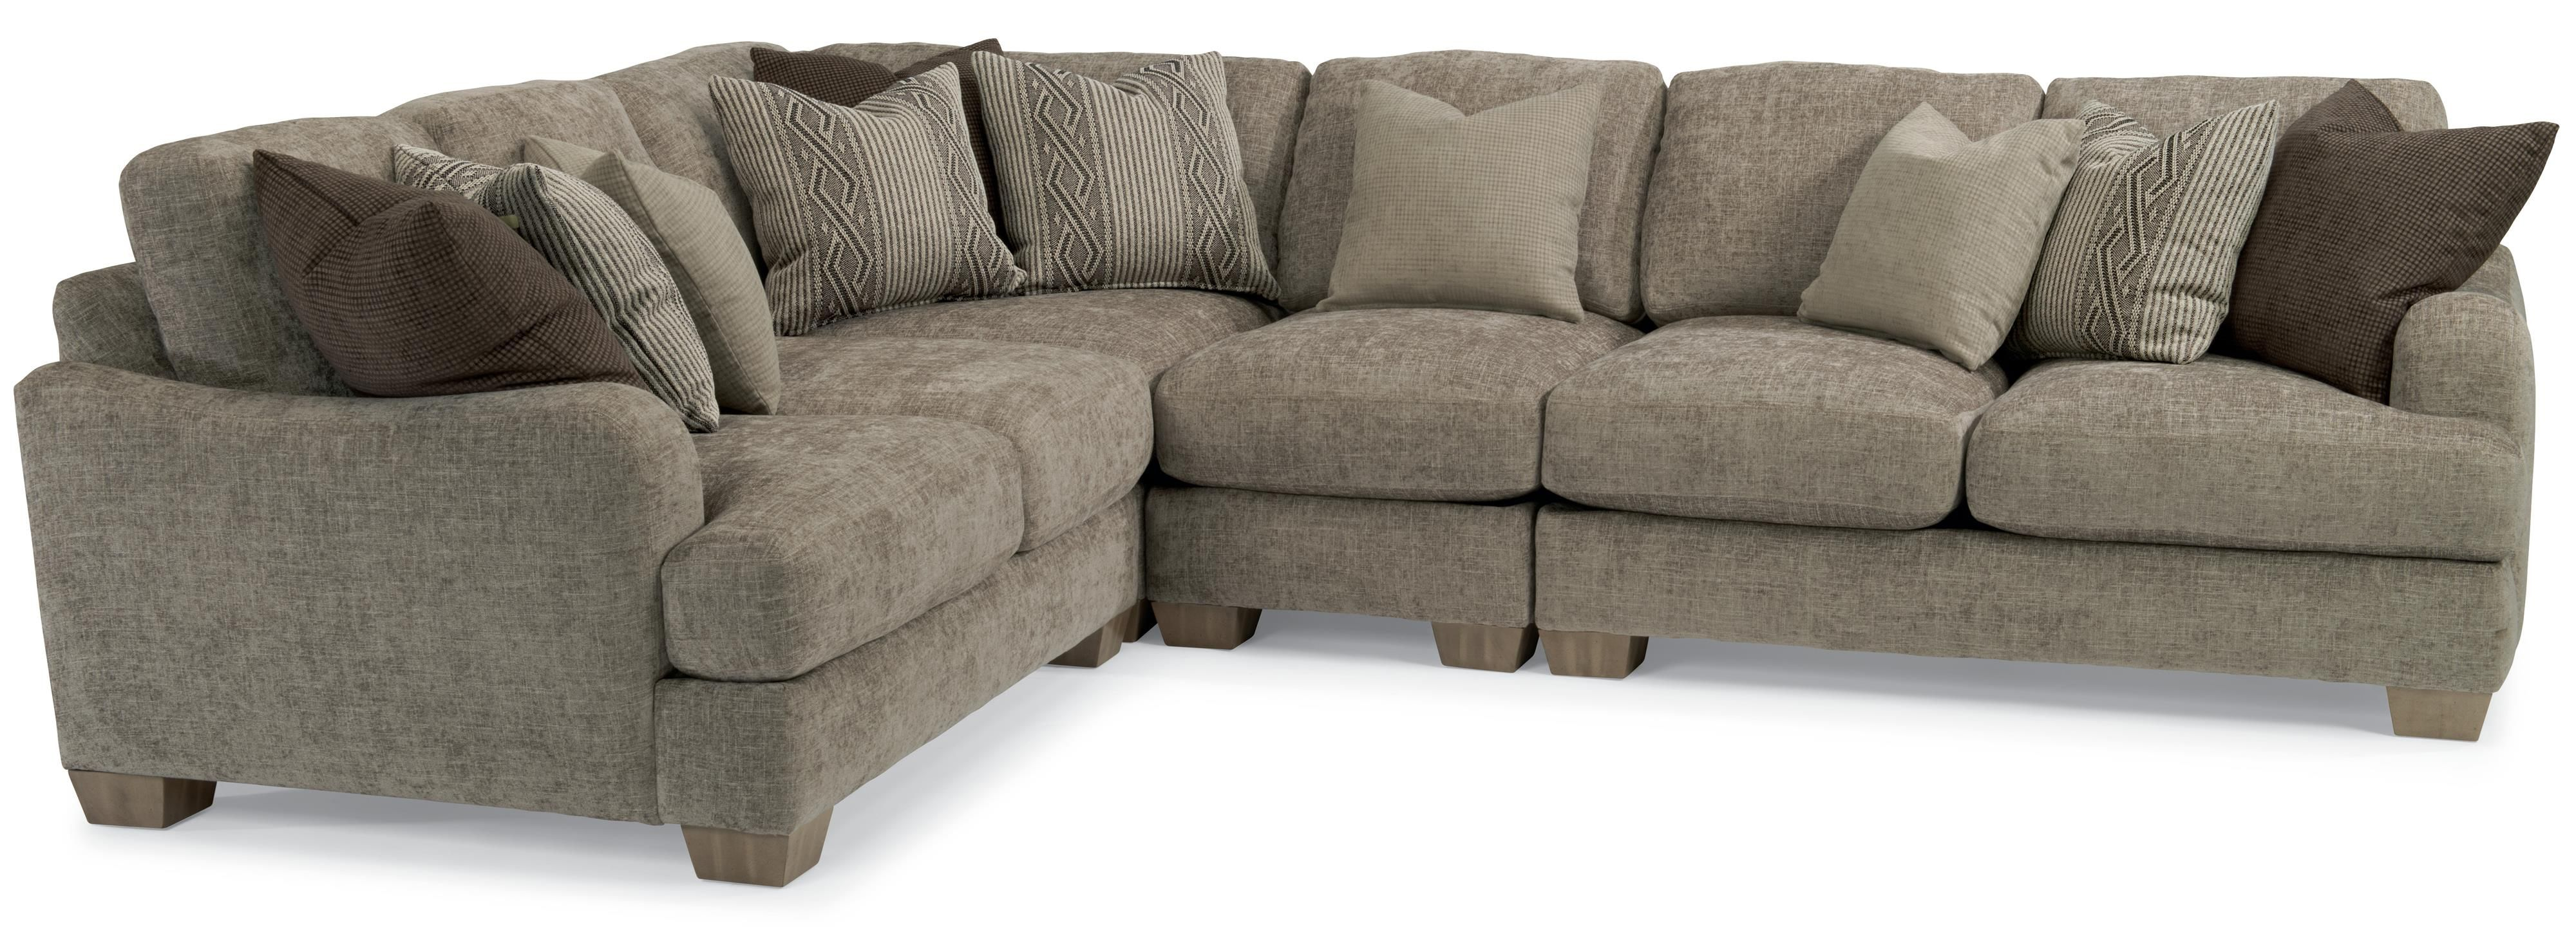 Vanessa Sectional Sofa by Flexsteel Interiors